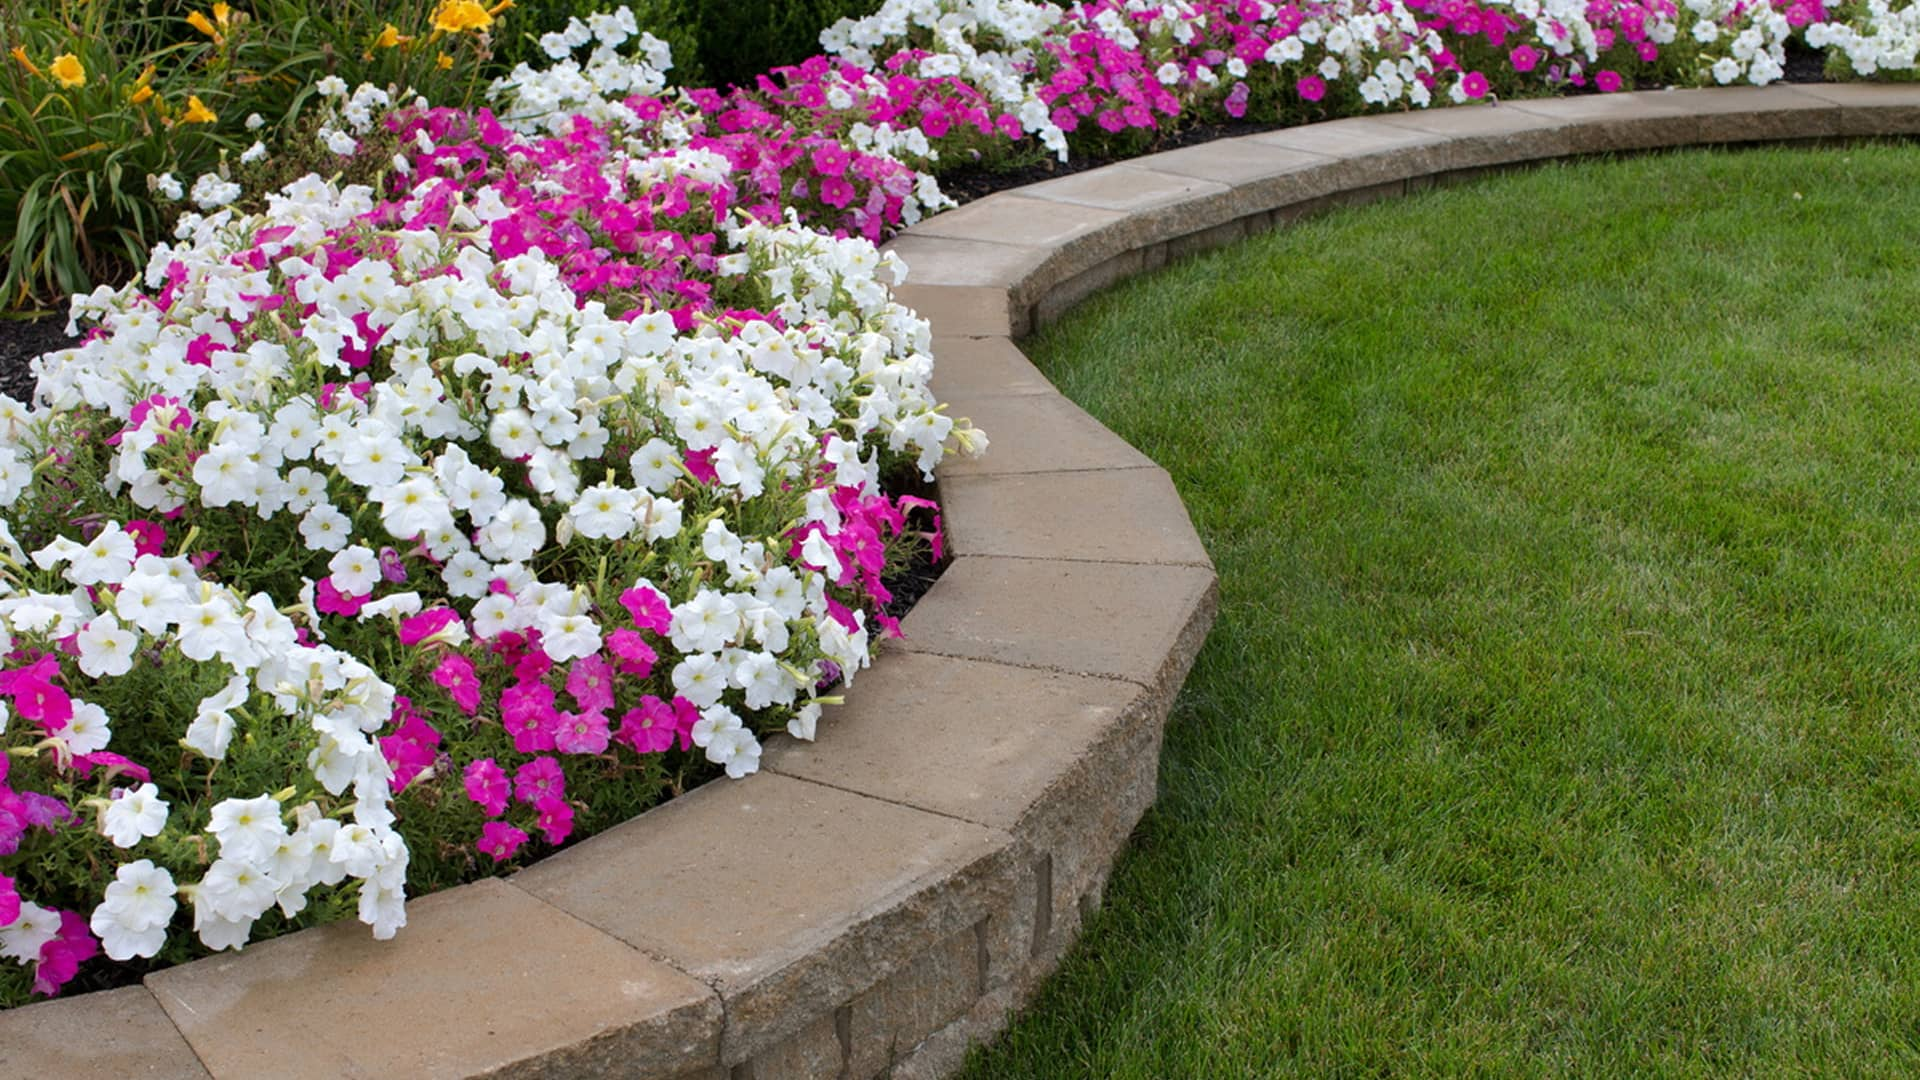 Tri Stars Landscaping And Snow Services LLC Landscaping Company, Mulching Services and Retaining Wall Construction slide 2